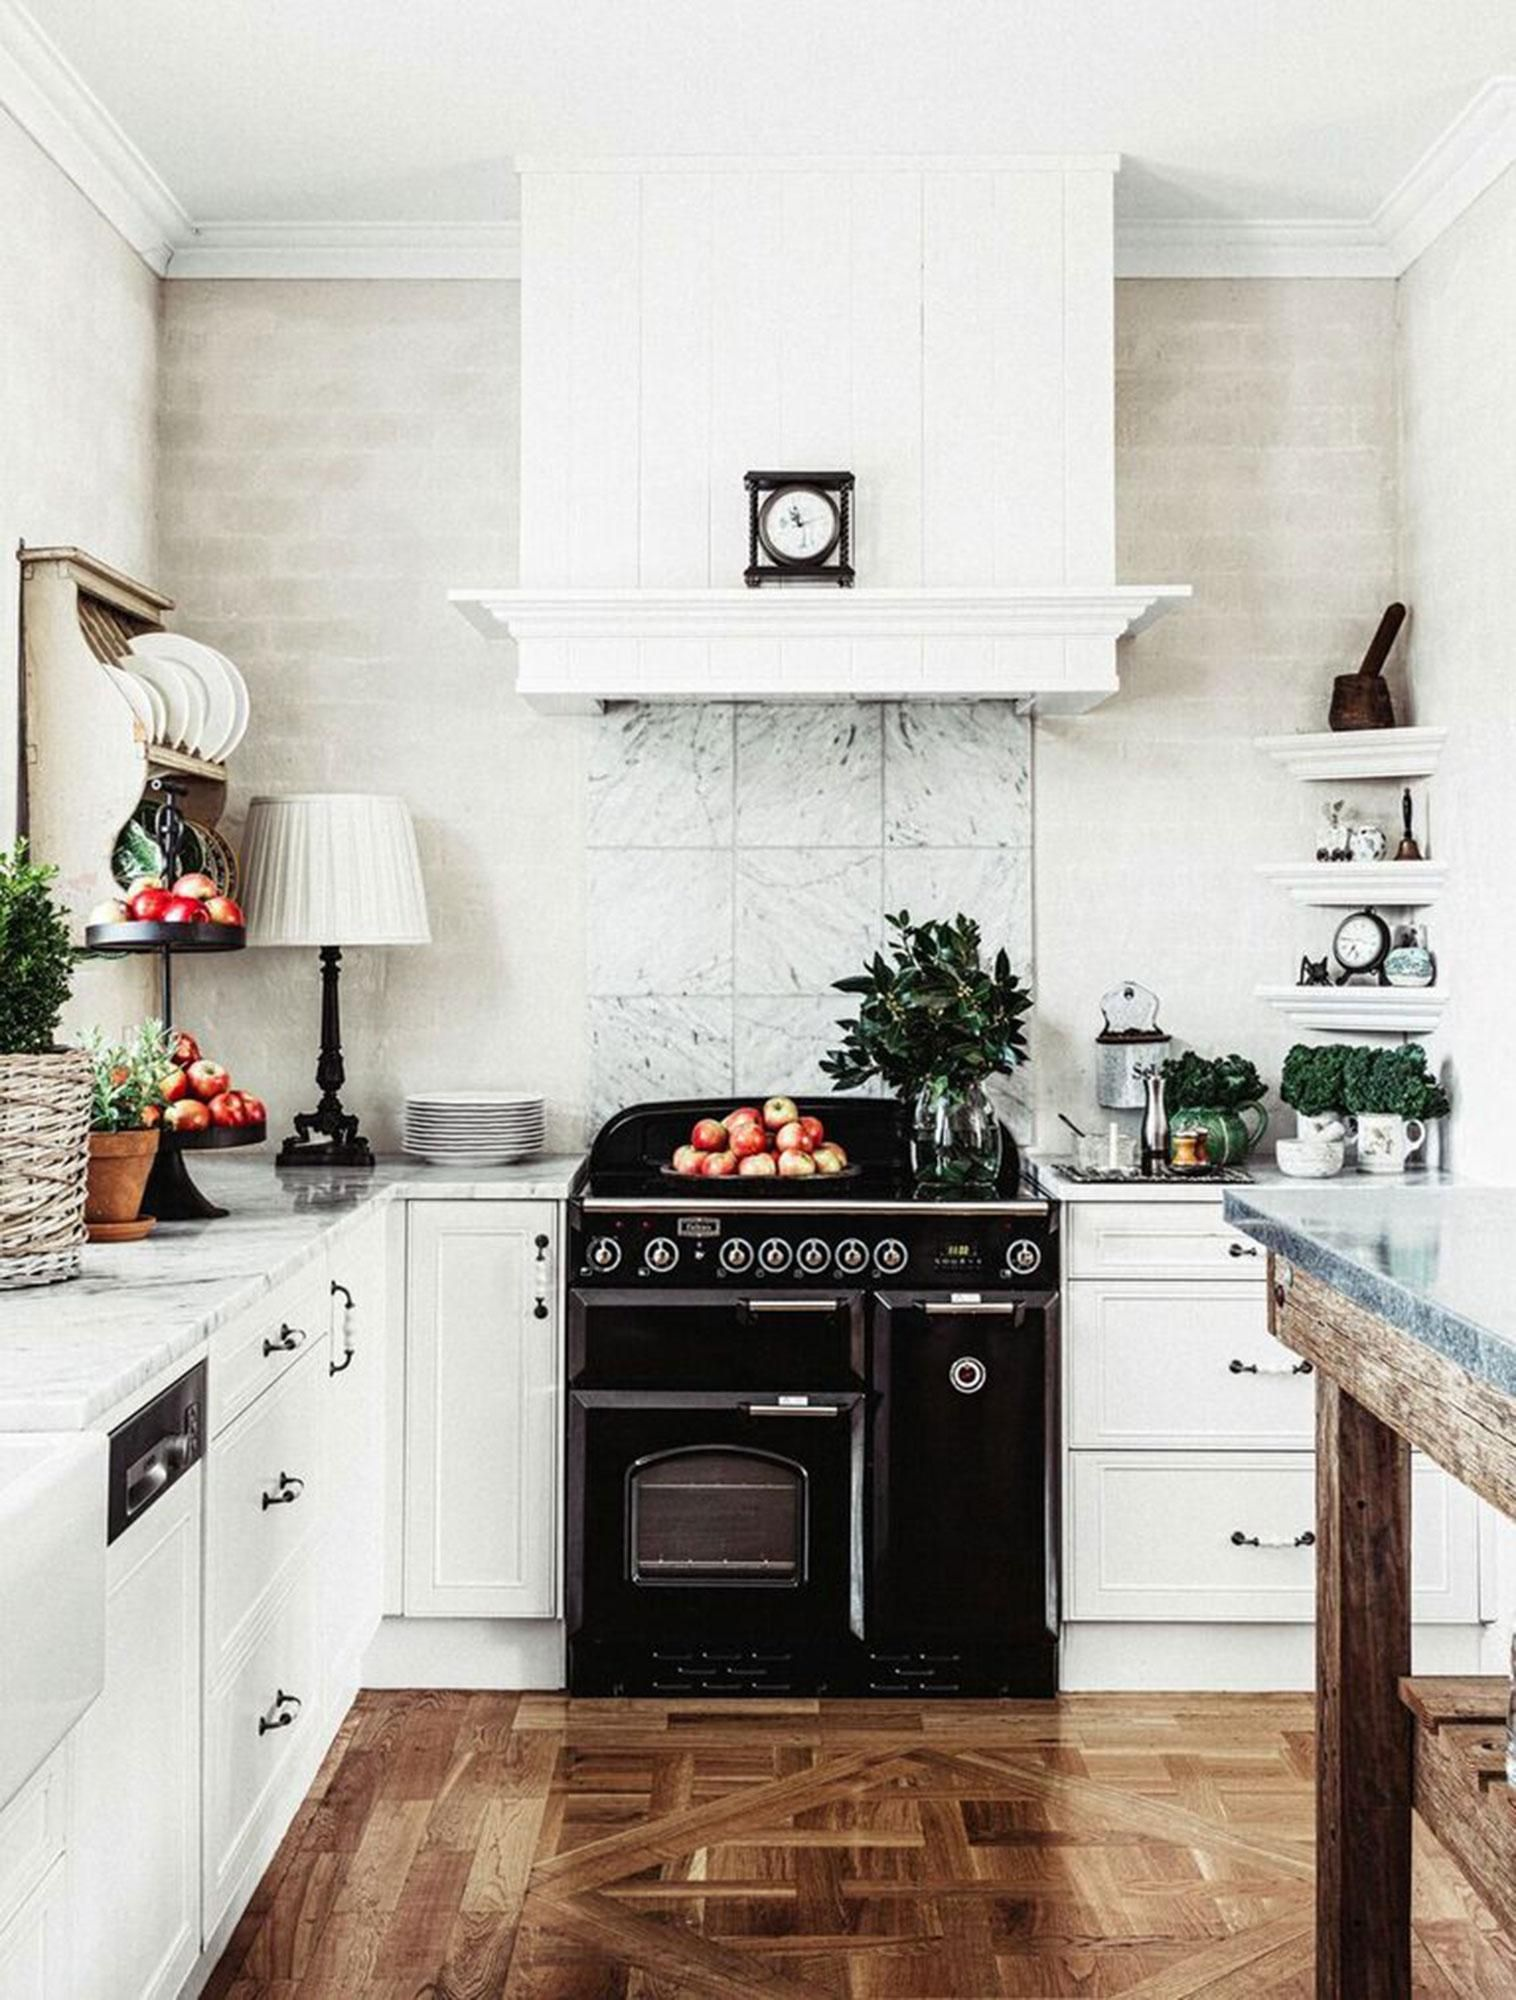 10 tips for your kitchen renovation | French provincial, French ...